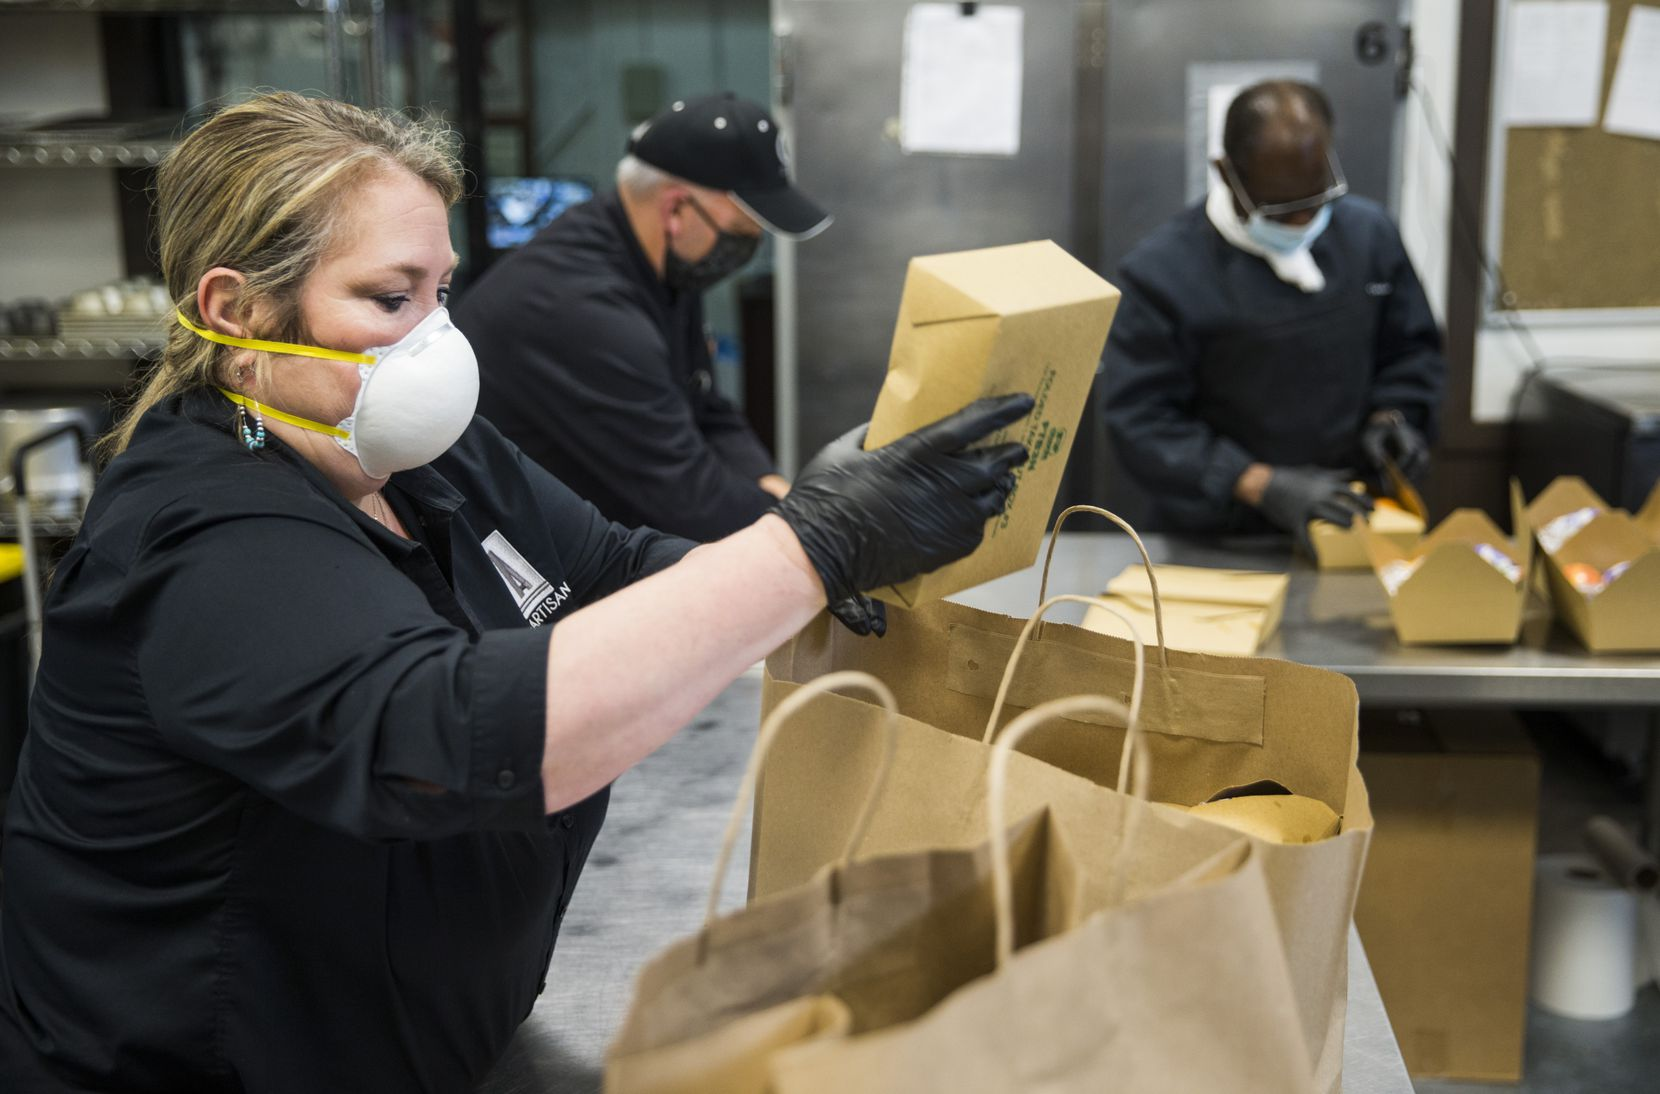 From left, Trisha Snell, John Gilbert, and Bill Jordan of G-Texas Custom Catering pack box lunches for Austin Street Shelter on Saturday, April 11, 2020 at G-Texas Custom Catering in Dallas.